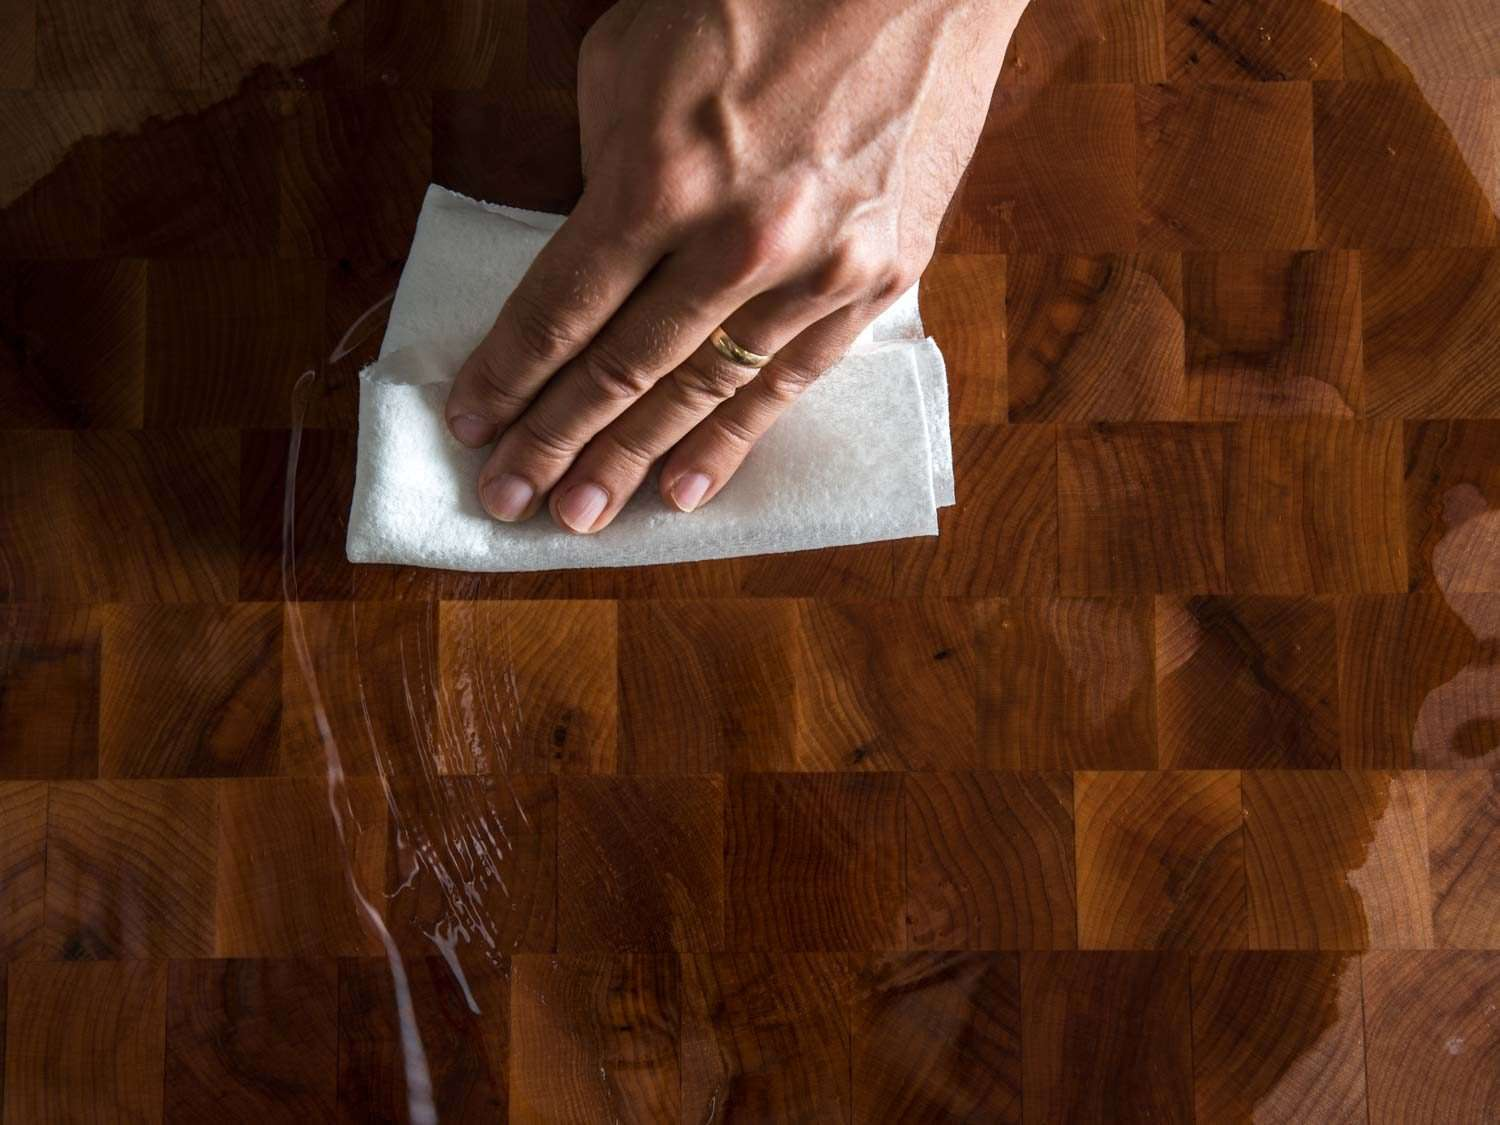 wiping mineral oil over a wood board